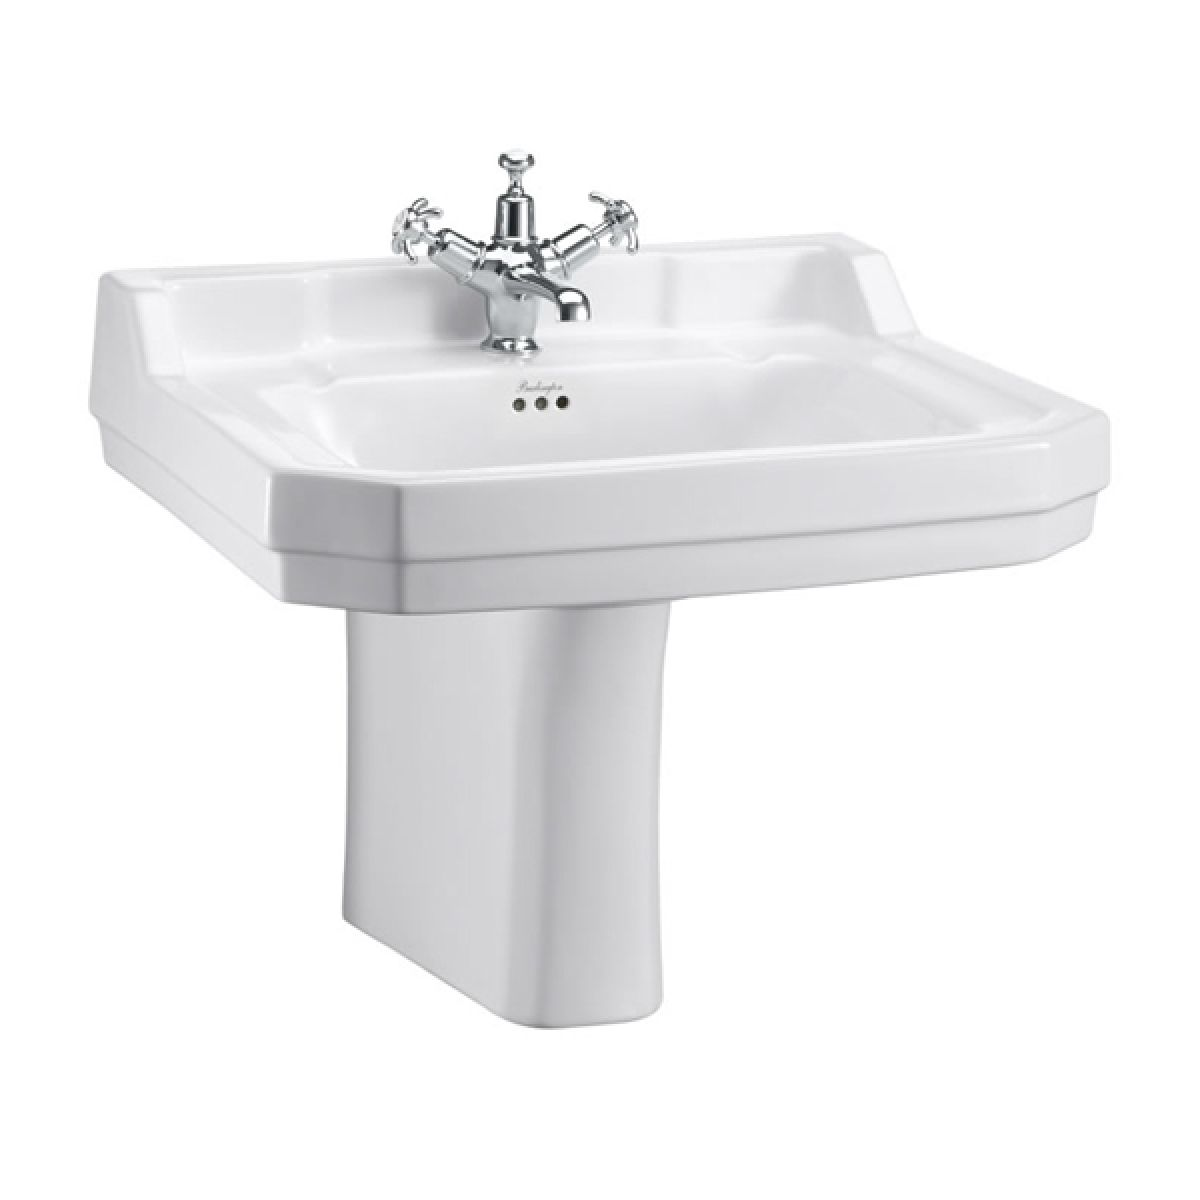 Burlington Edwardian Basin and Semi Pedestal 610mm